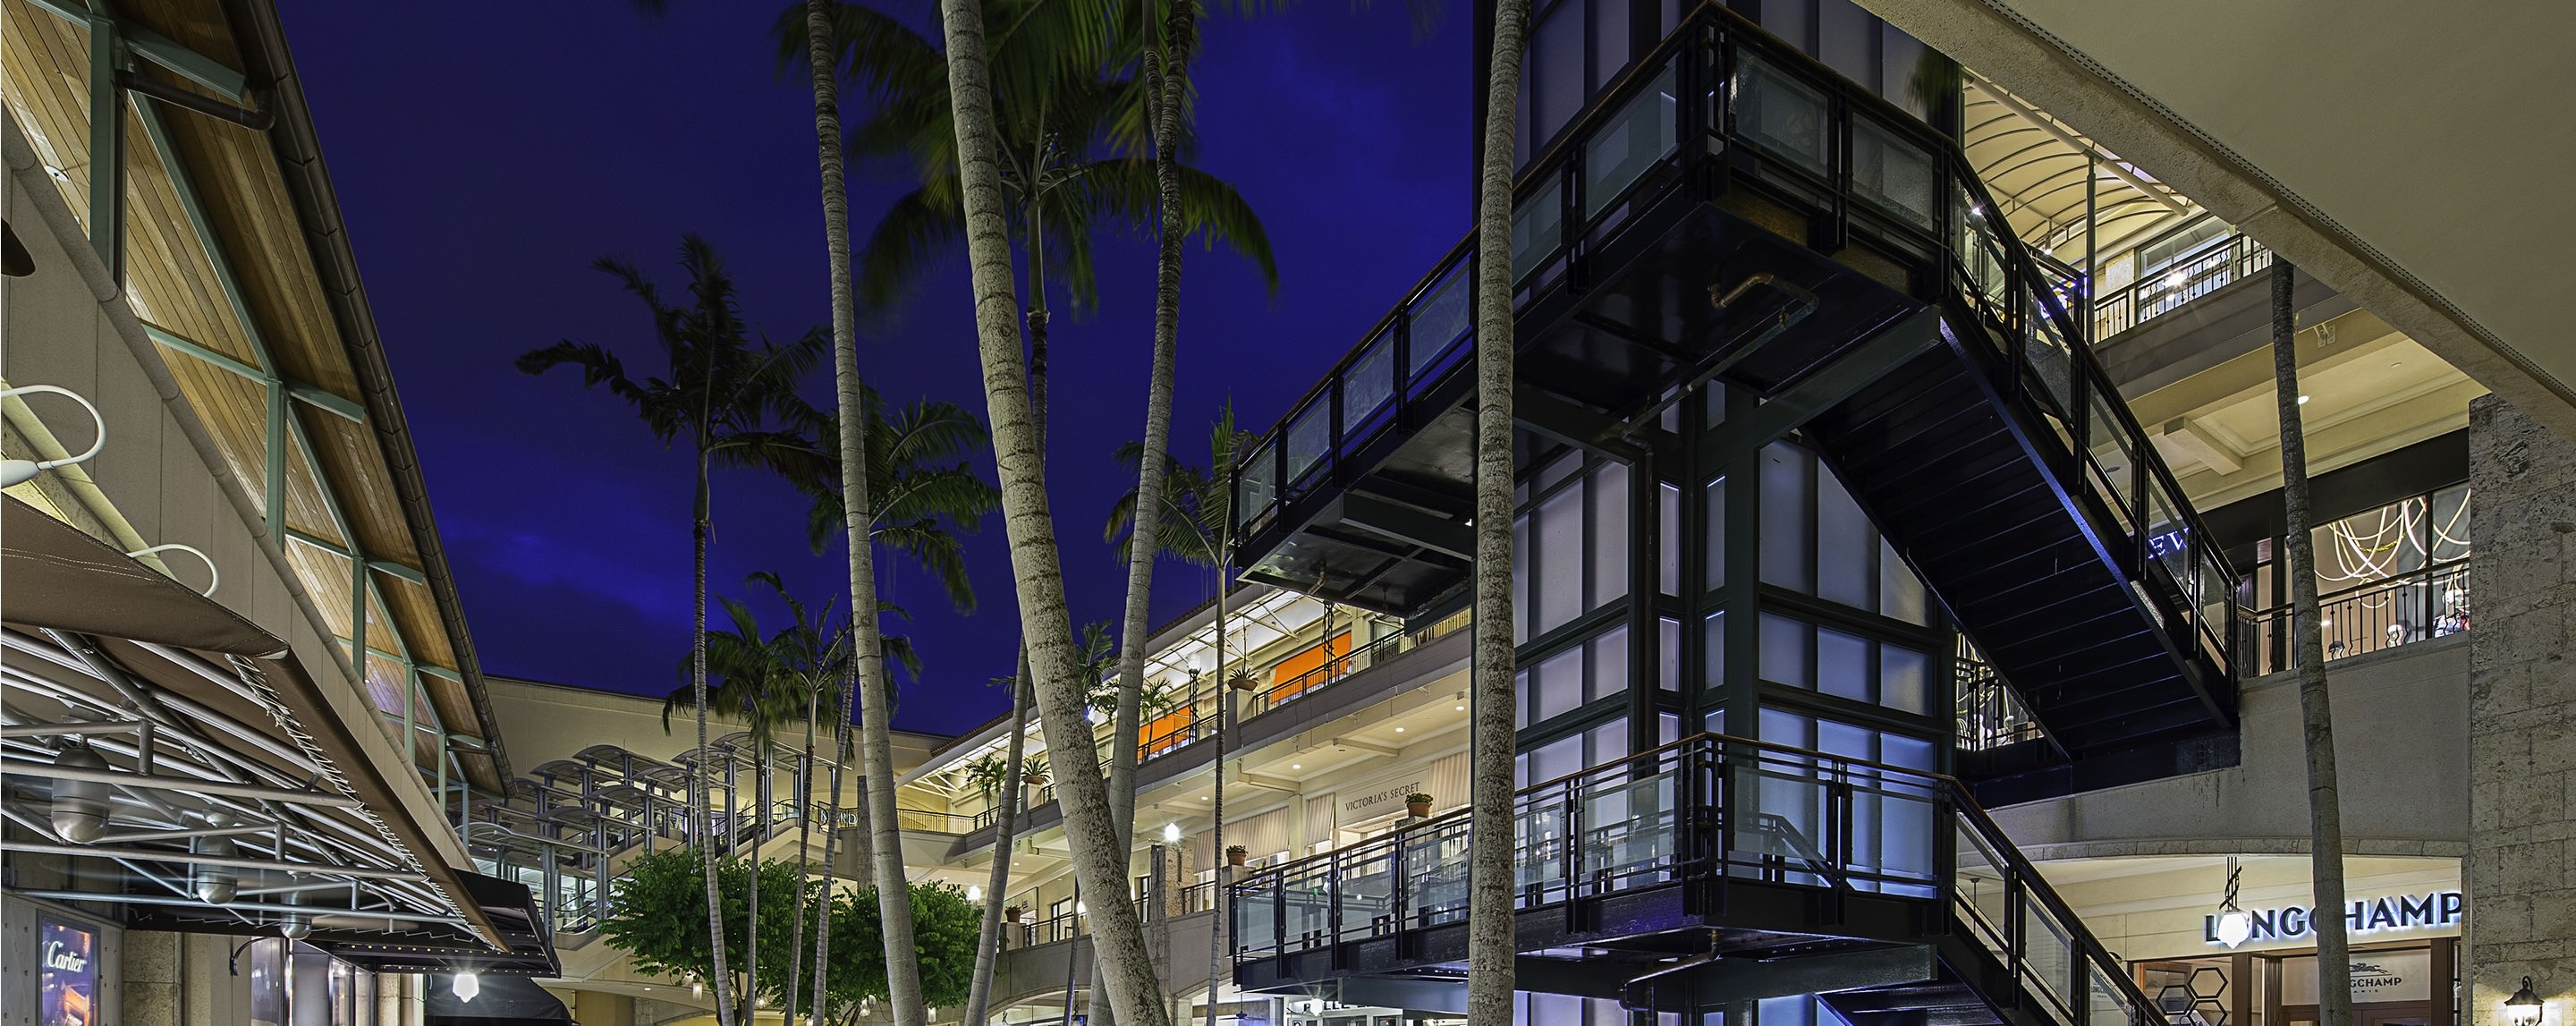 At Shops at Merrick Park, three levels of stores surround an outdoor walkway lined with palm trees.